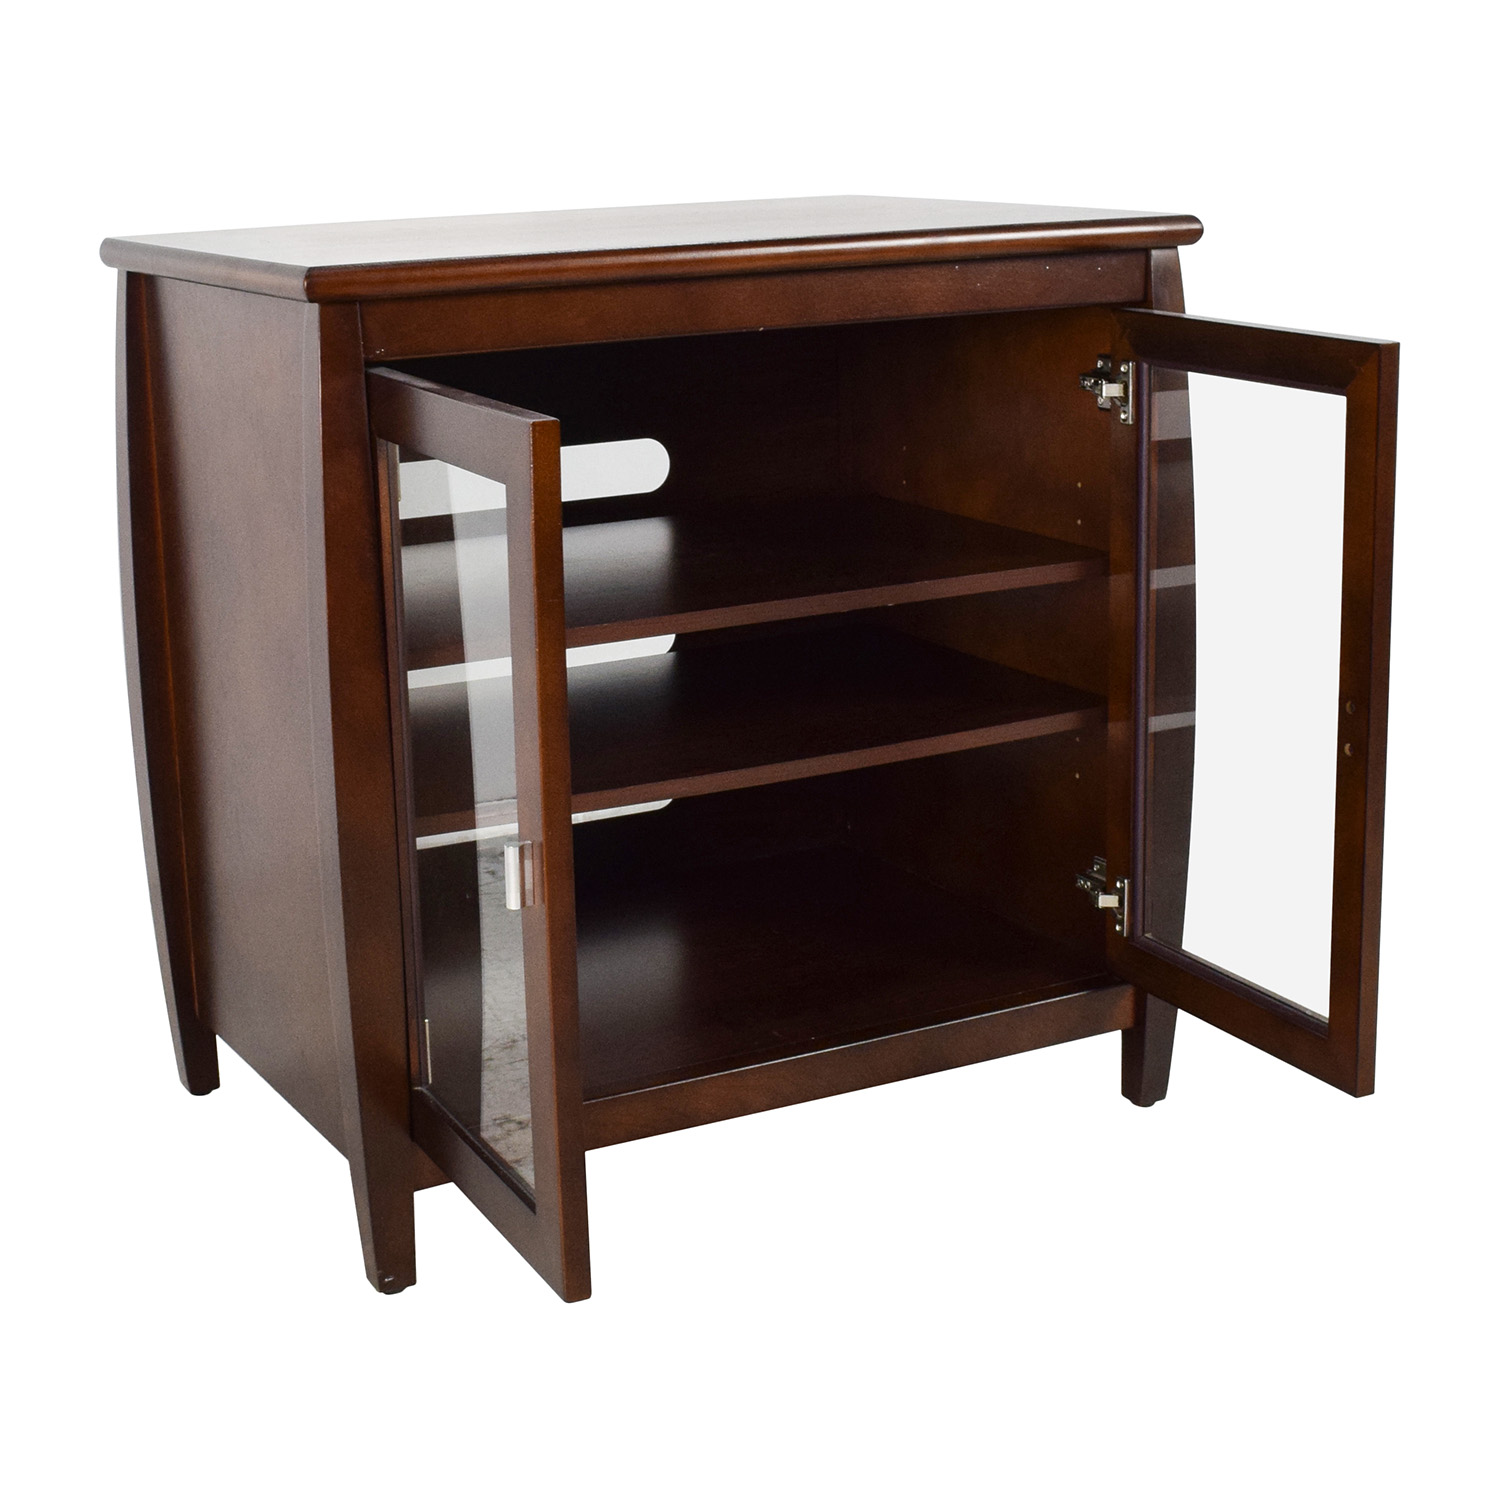 90 off wayfair wayfair media console storage for Furniture 90 off